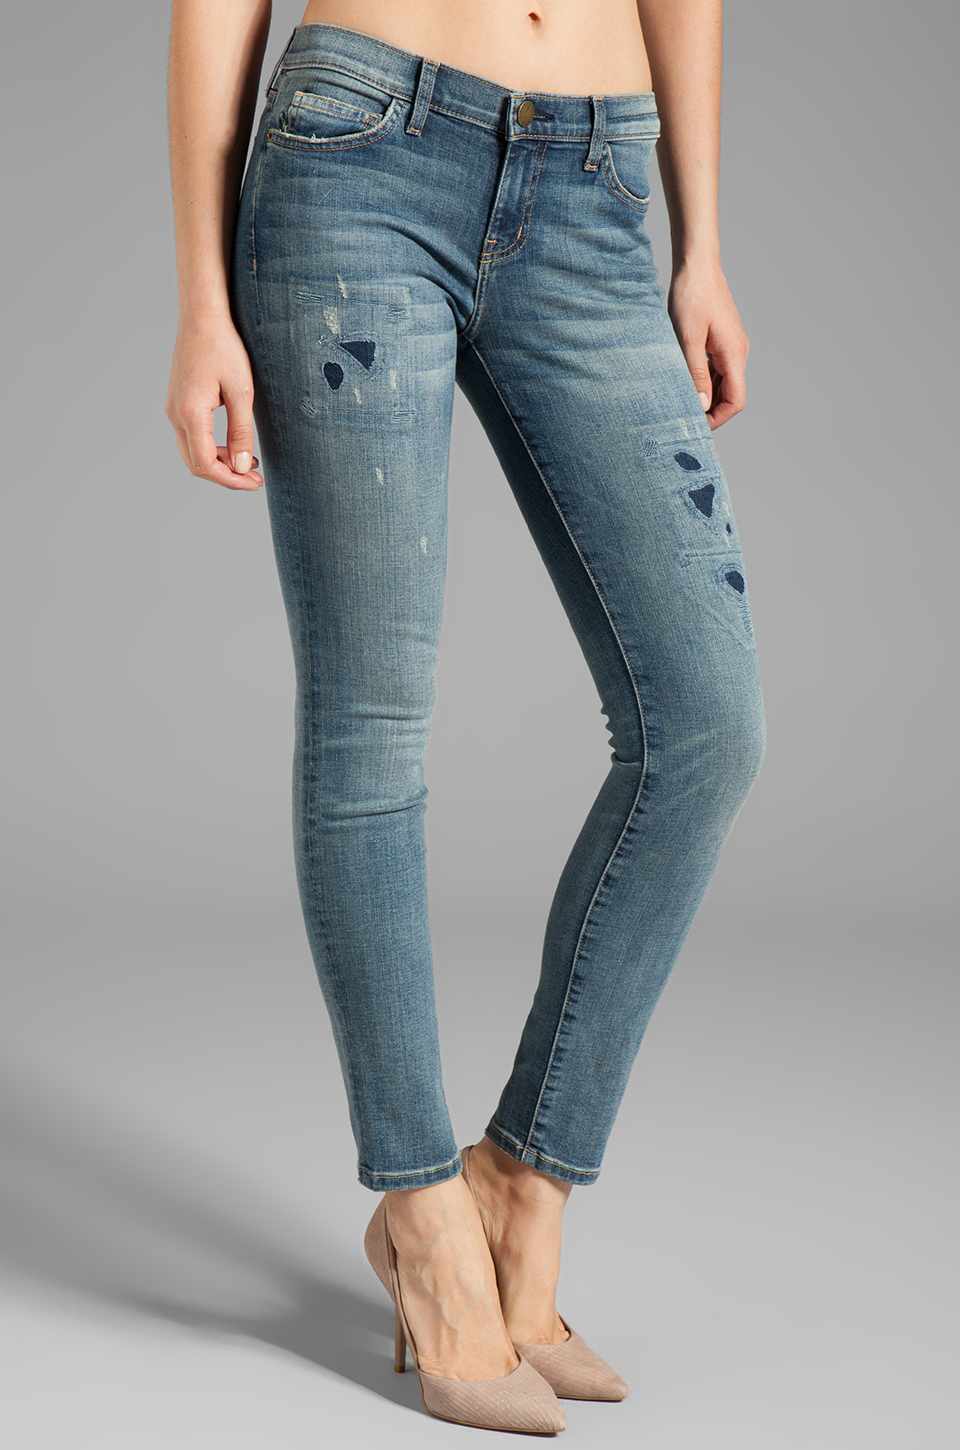 Current/Elliott The Ankle Skinny in Pixie w/Repair